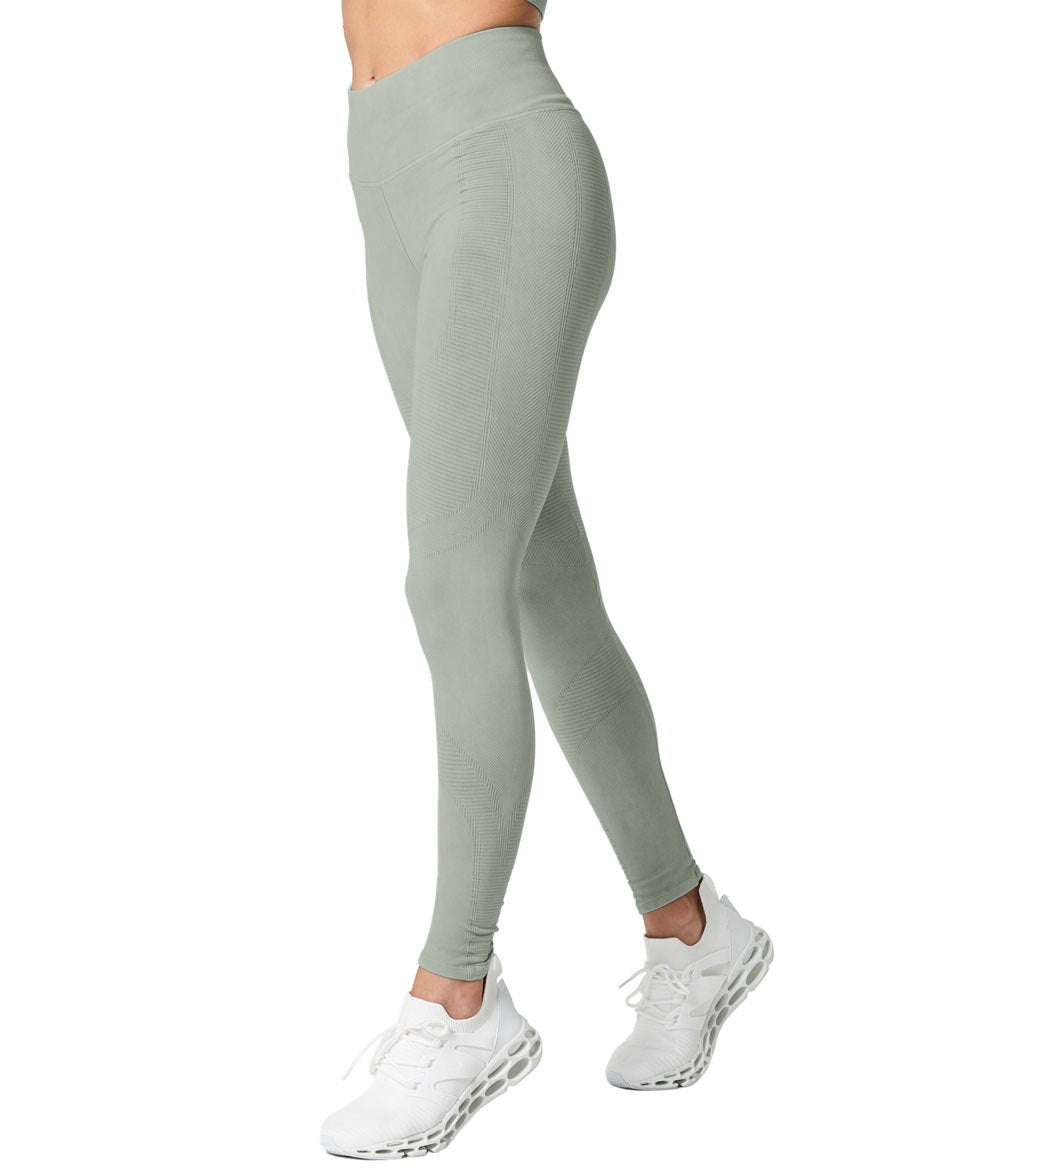 NUX One By Seamless Yoga Leggings - Wash Hidden Green Vintage Spandex